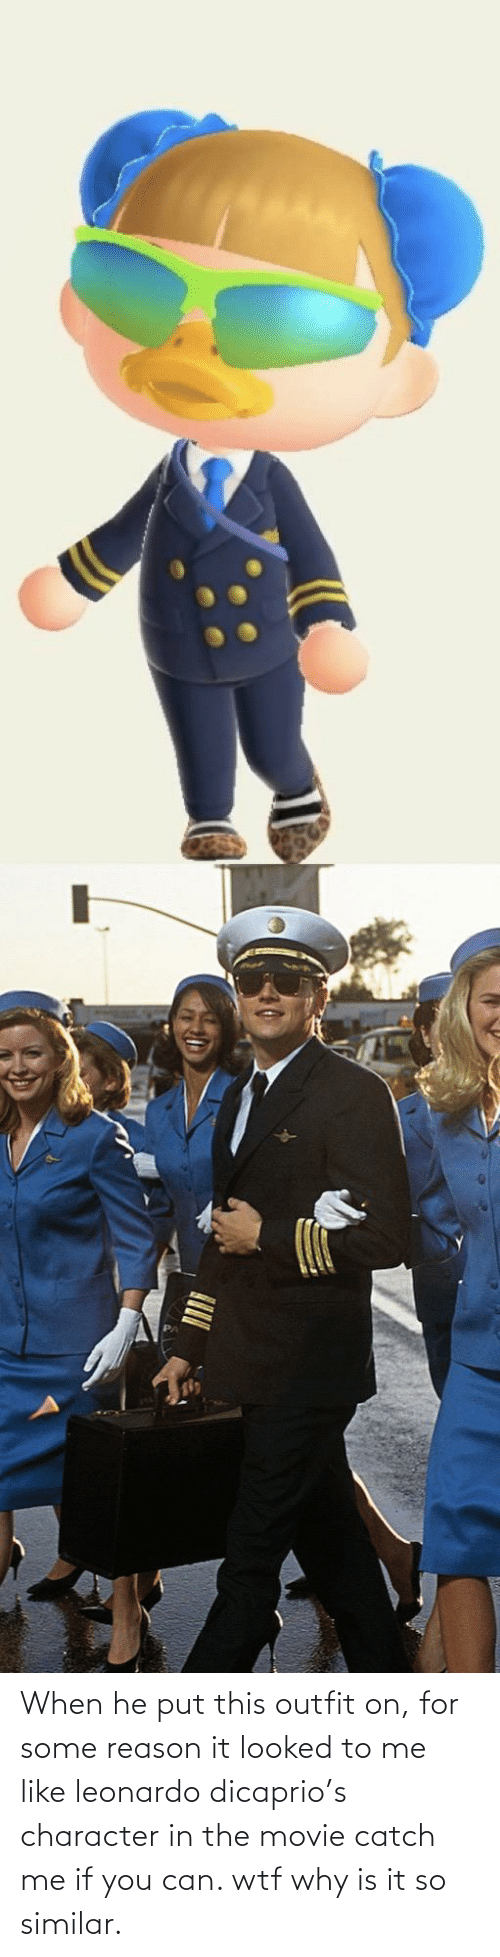 Leonardo DiCaprio, Wtf, and Movie: When he put this outfit on, for some reason it looked to me like leonardo dicaprio's character in the movie catch me if you can. wtf why is it so similar.